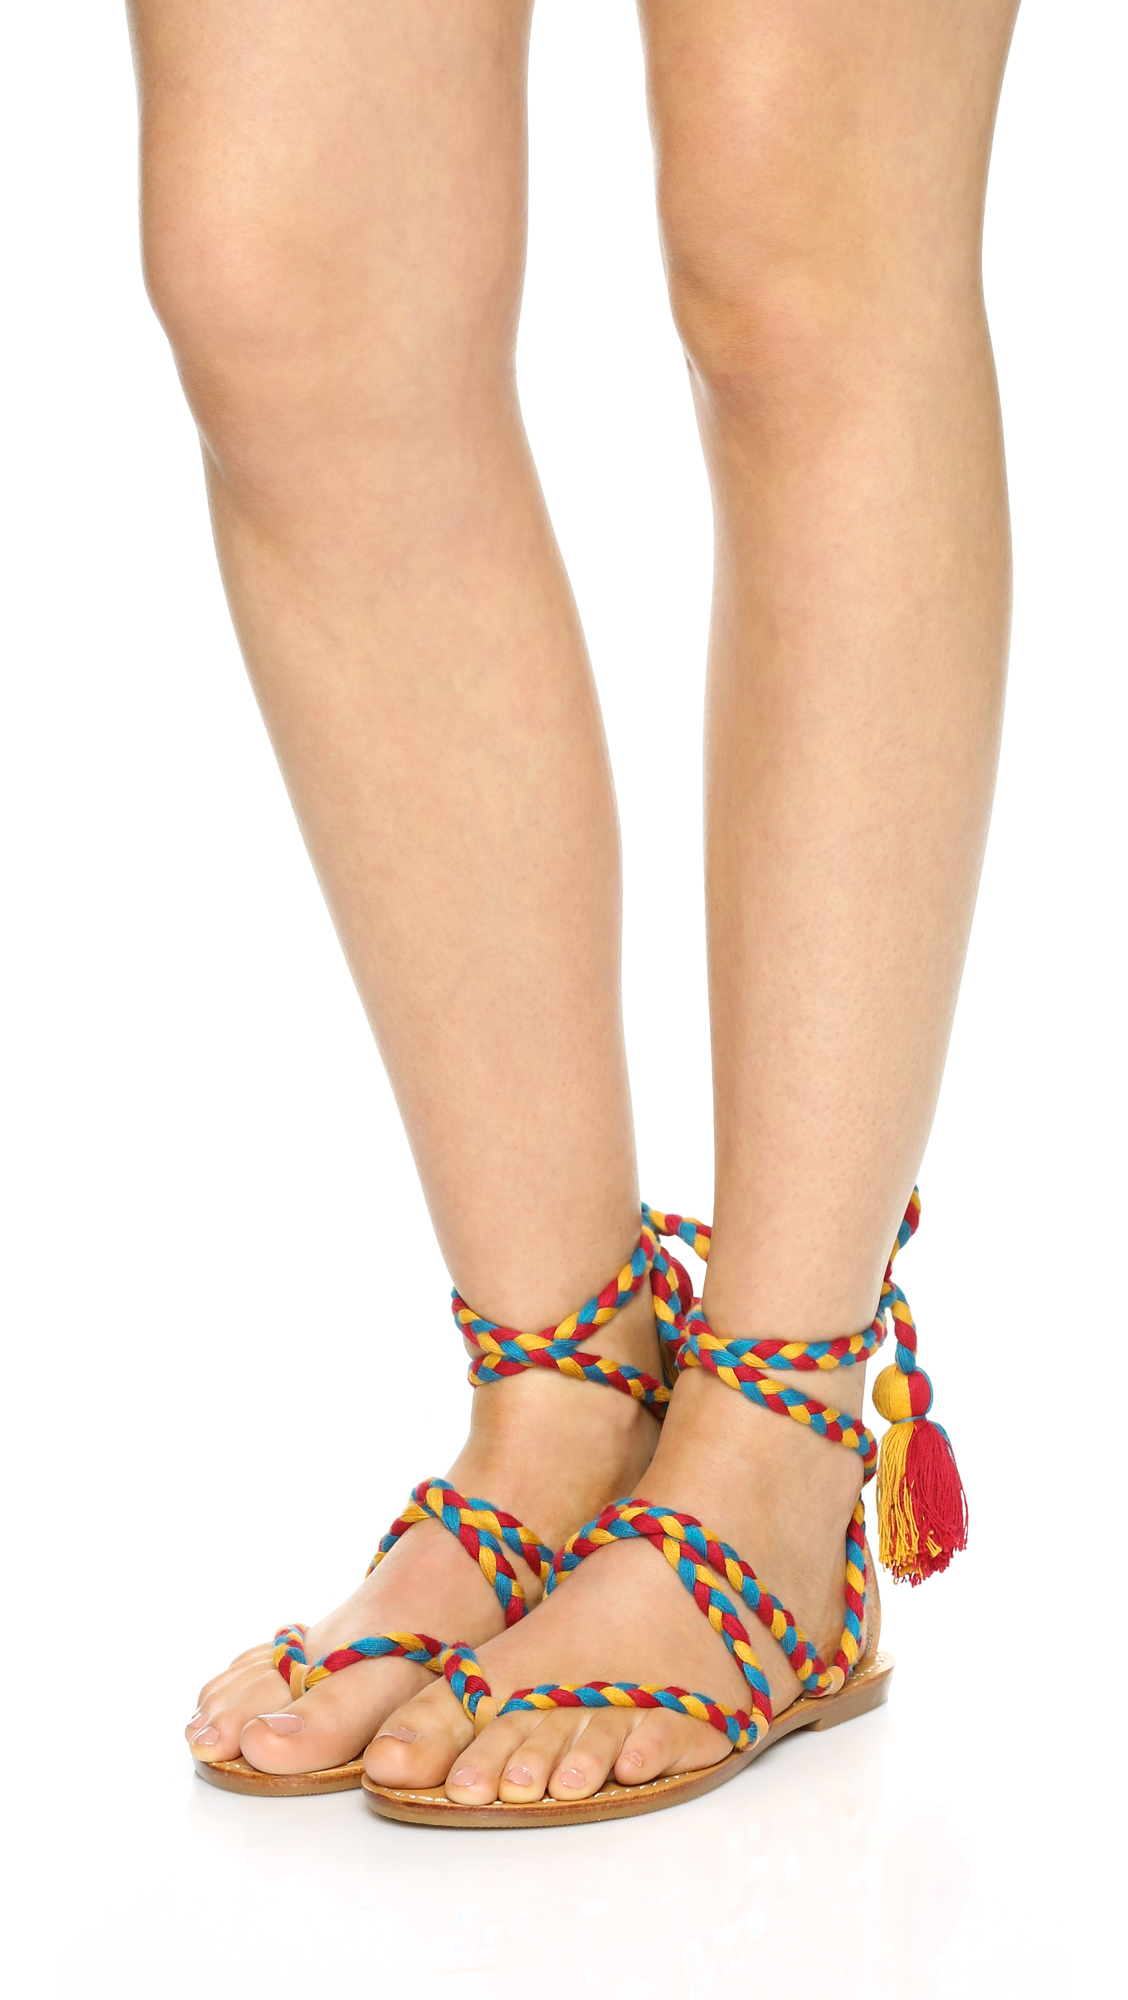 4368f0bca4d Soludos Gladiator Lace Up Sandals